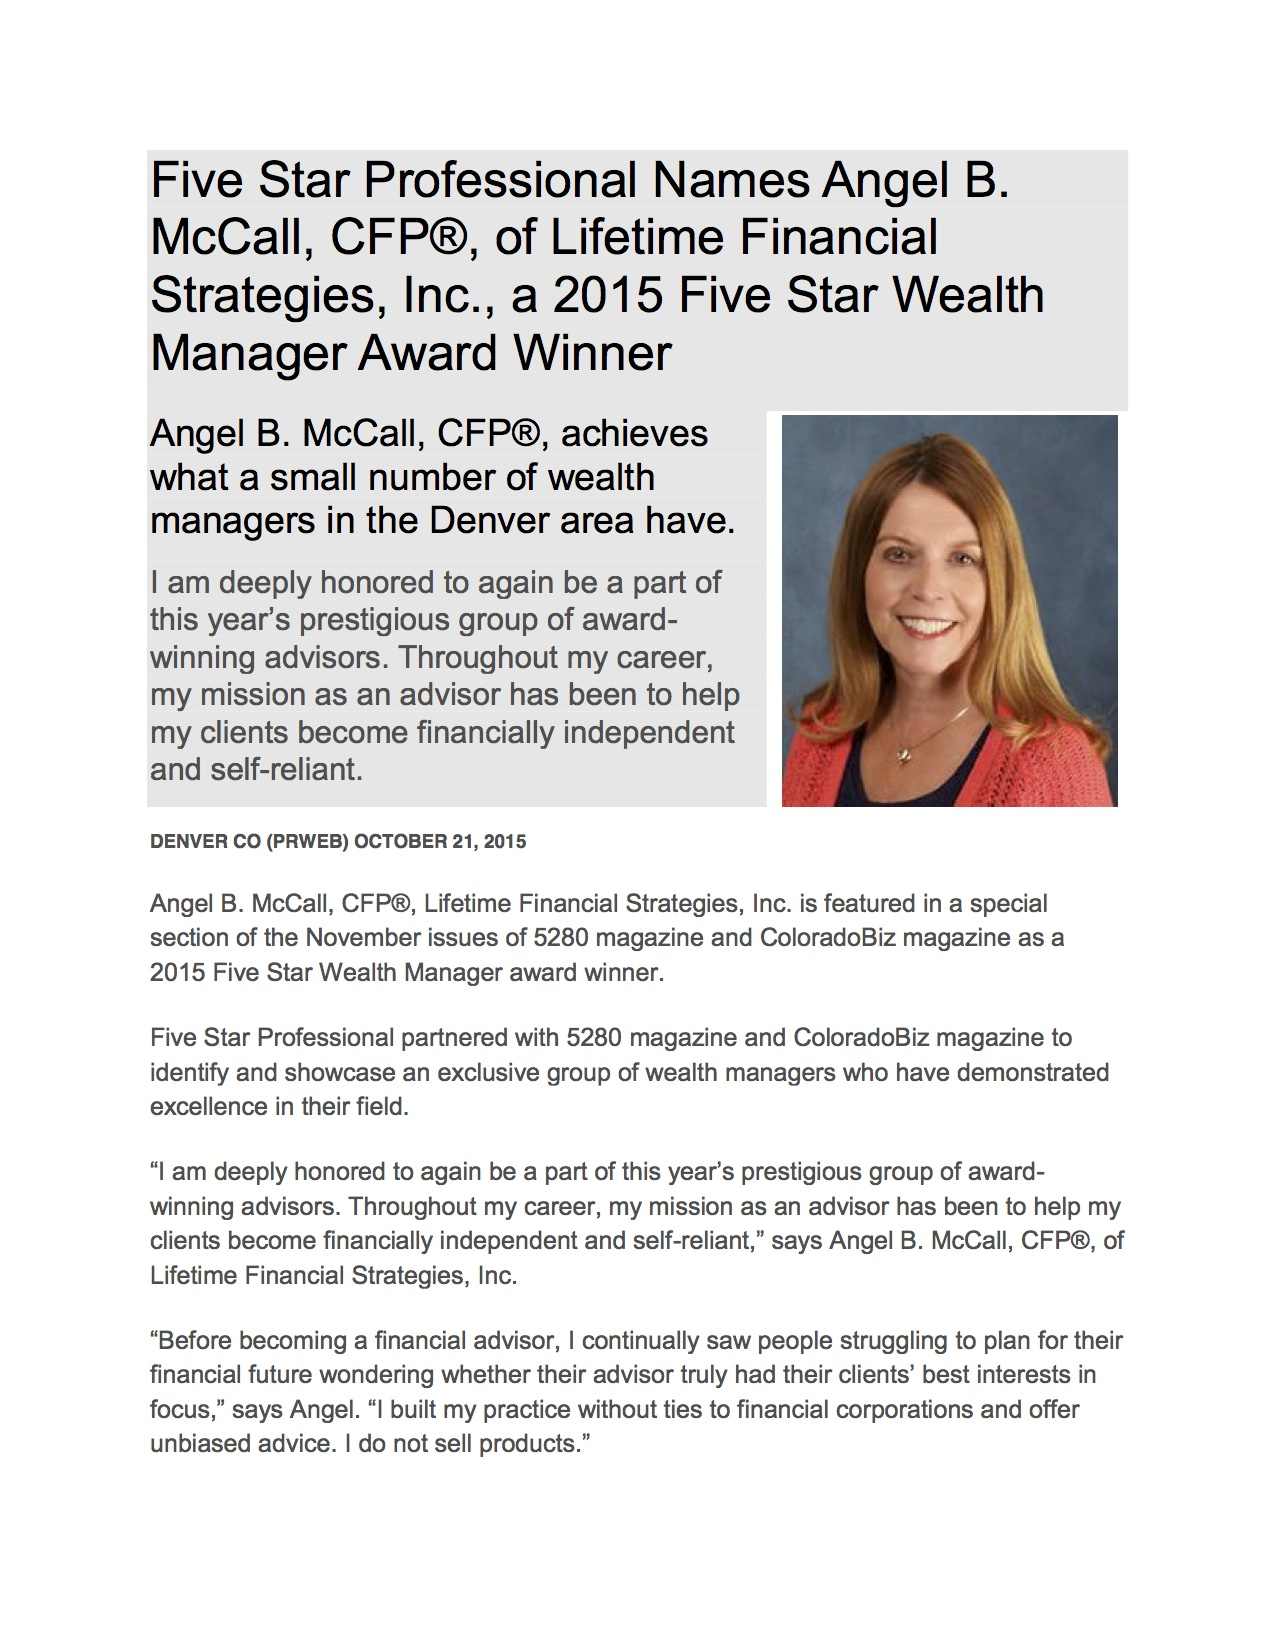 Angel McCall 5 Star Wealth Manager